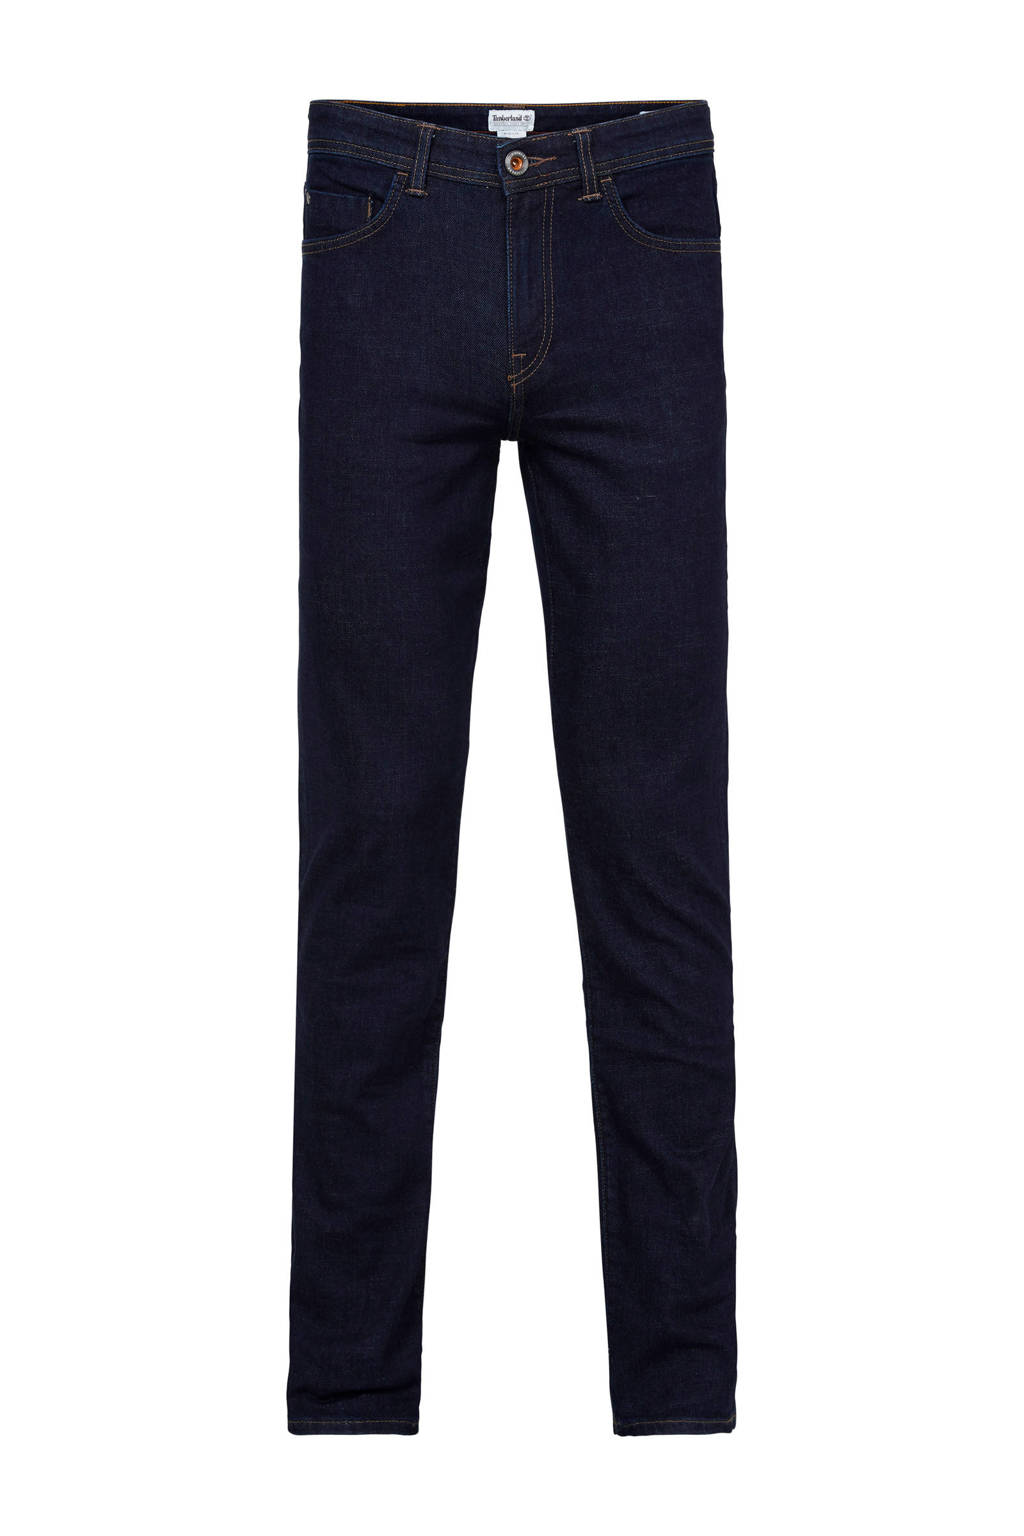 Timberland straight fit jeans donkerblauw, Donker blauw